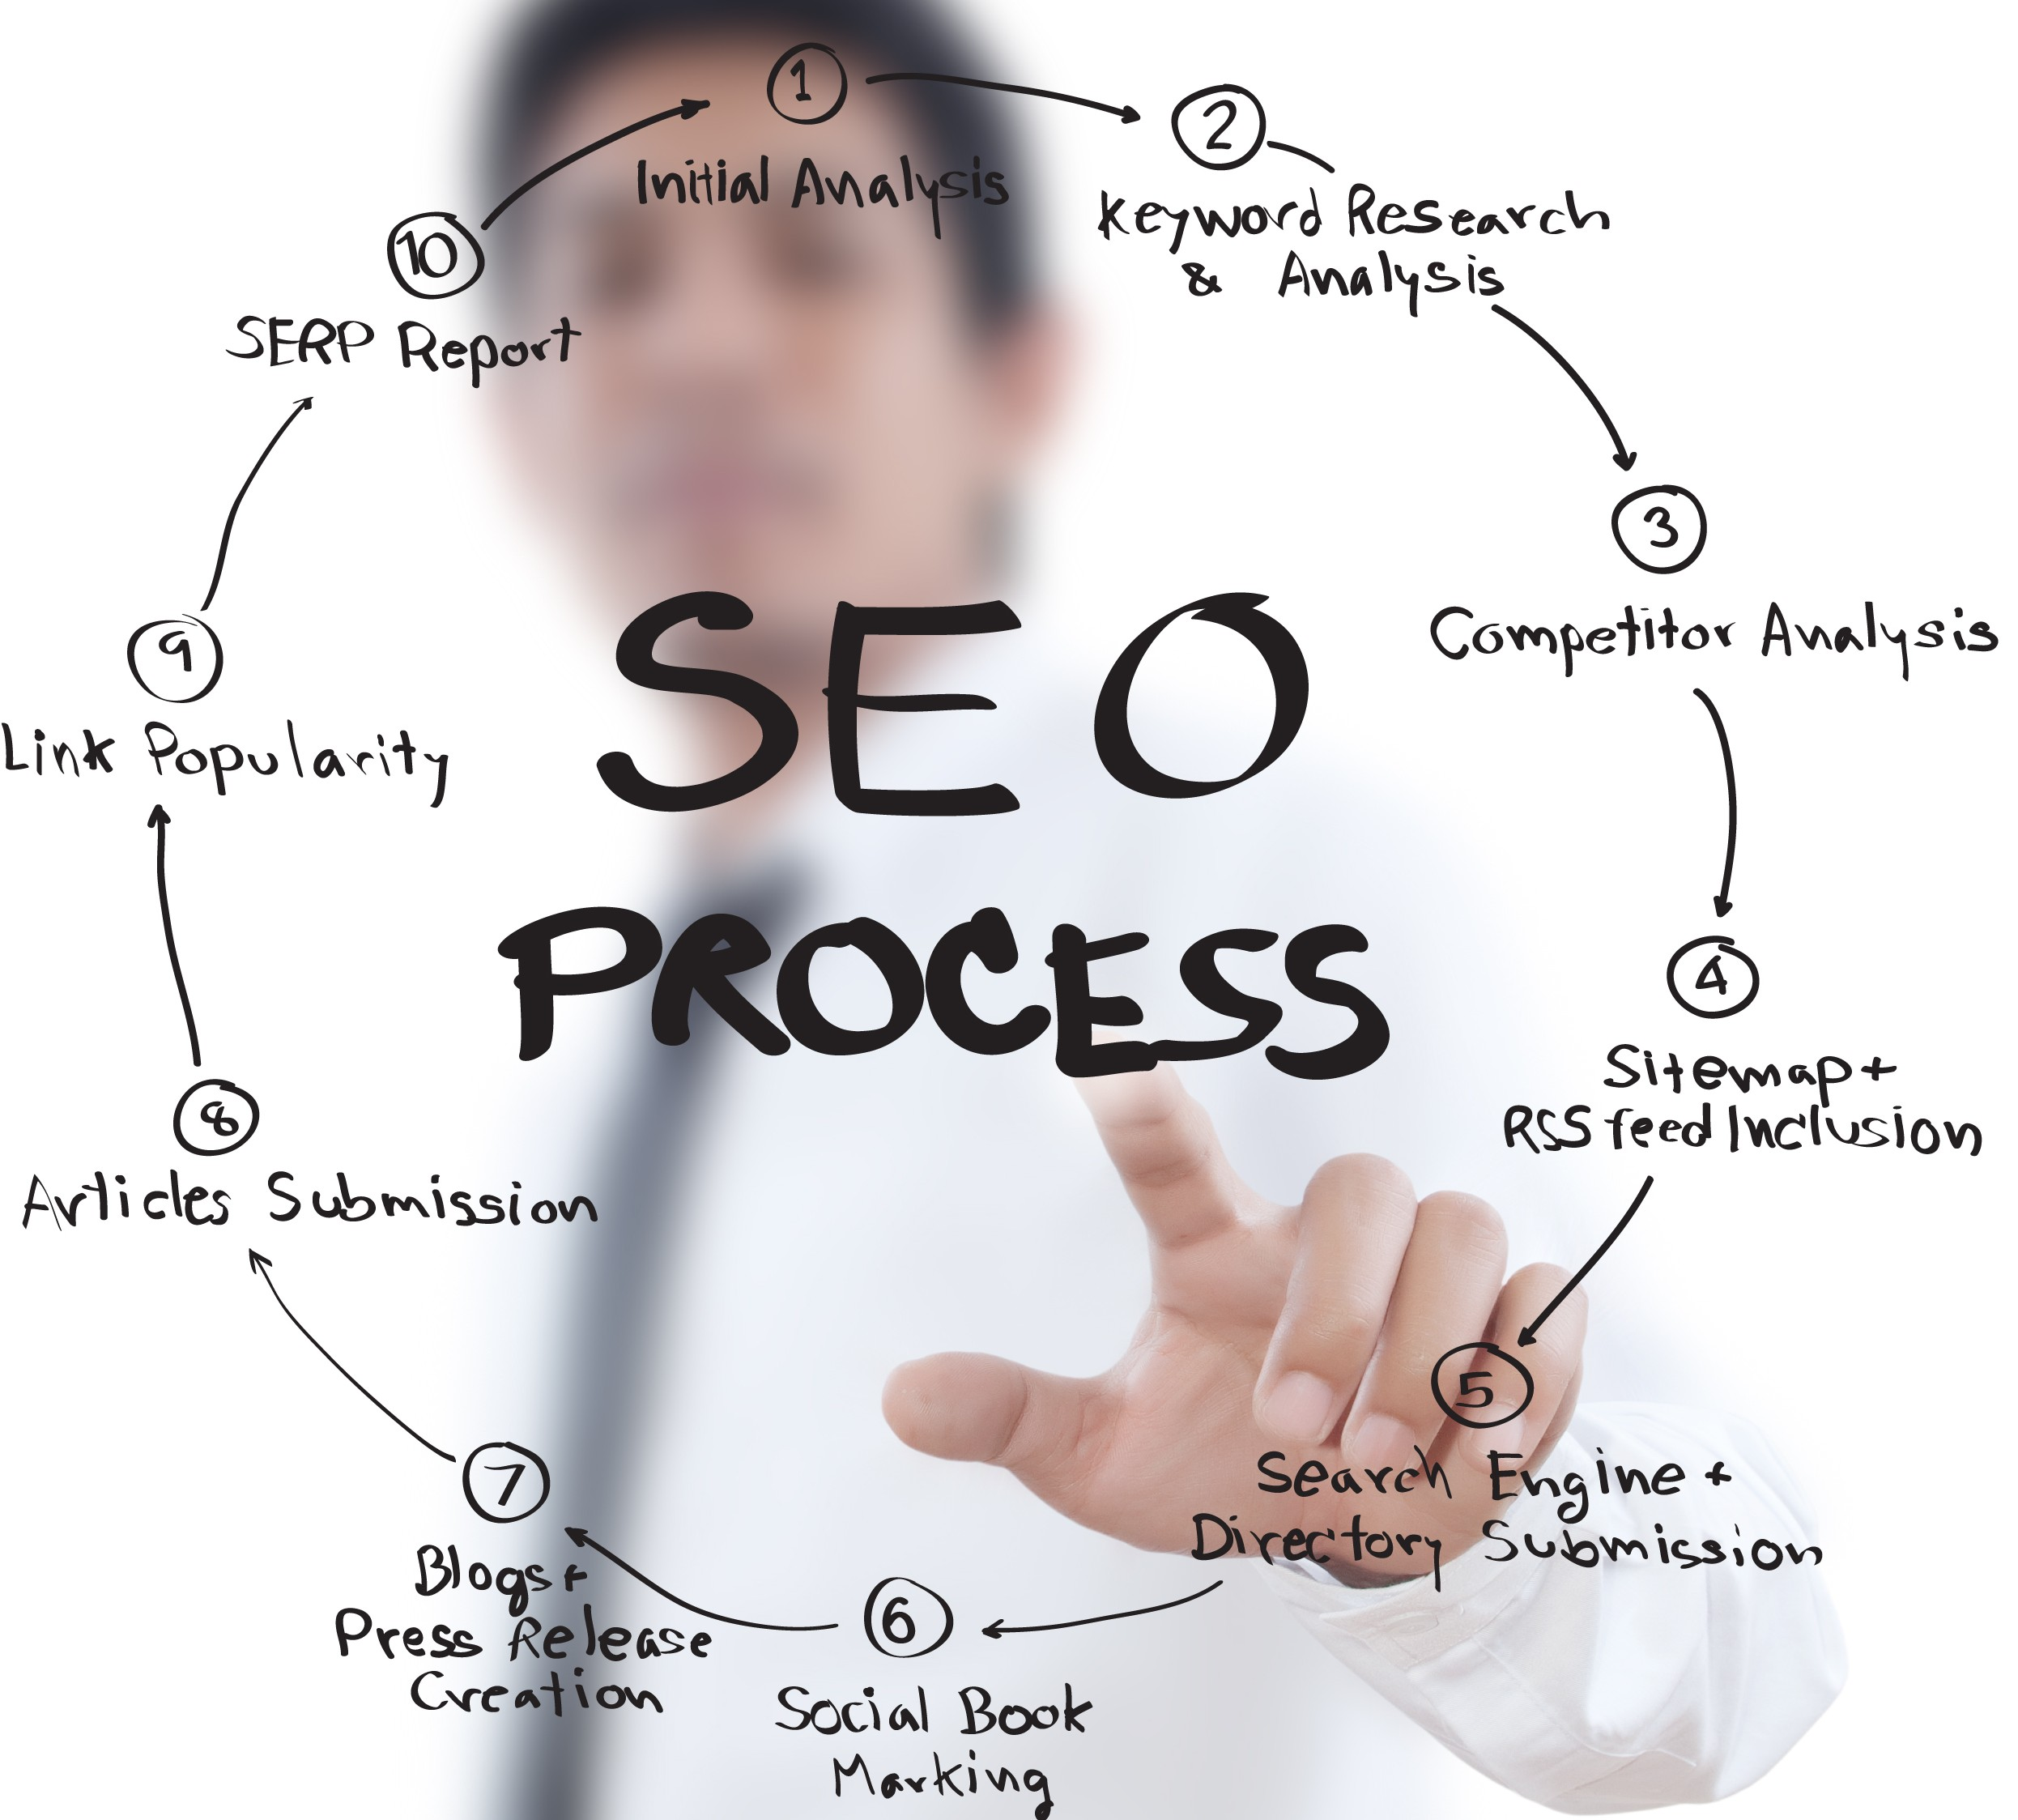 Is Content Marketing Better for SEO Than Link Building